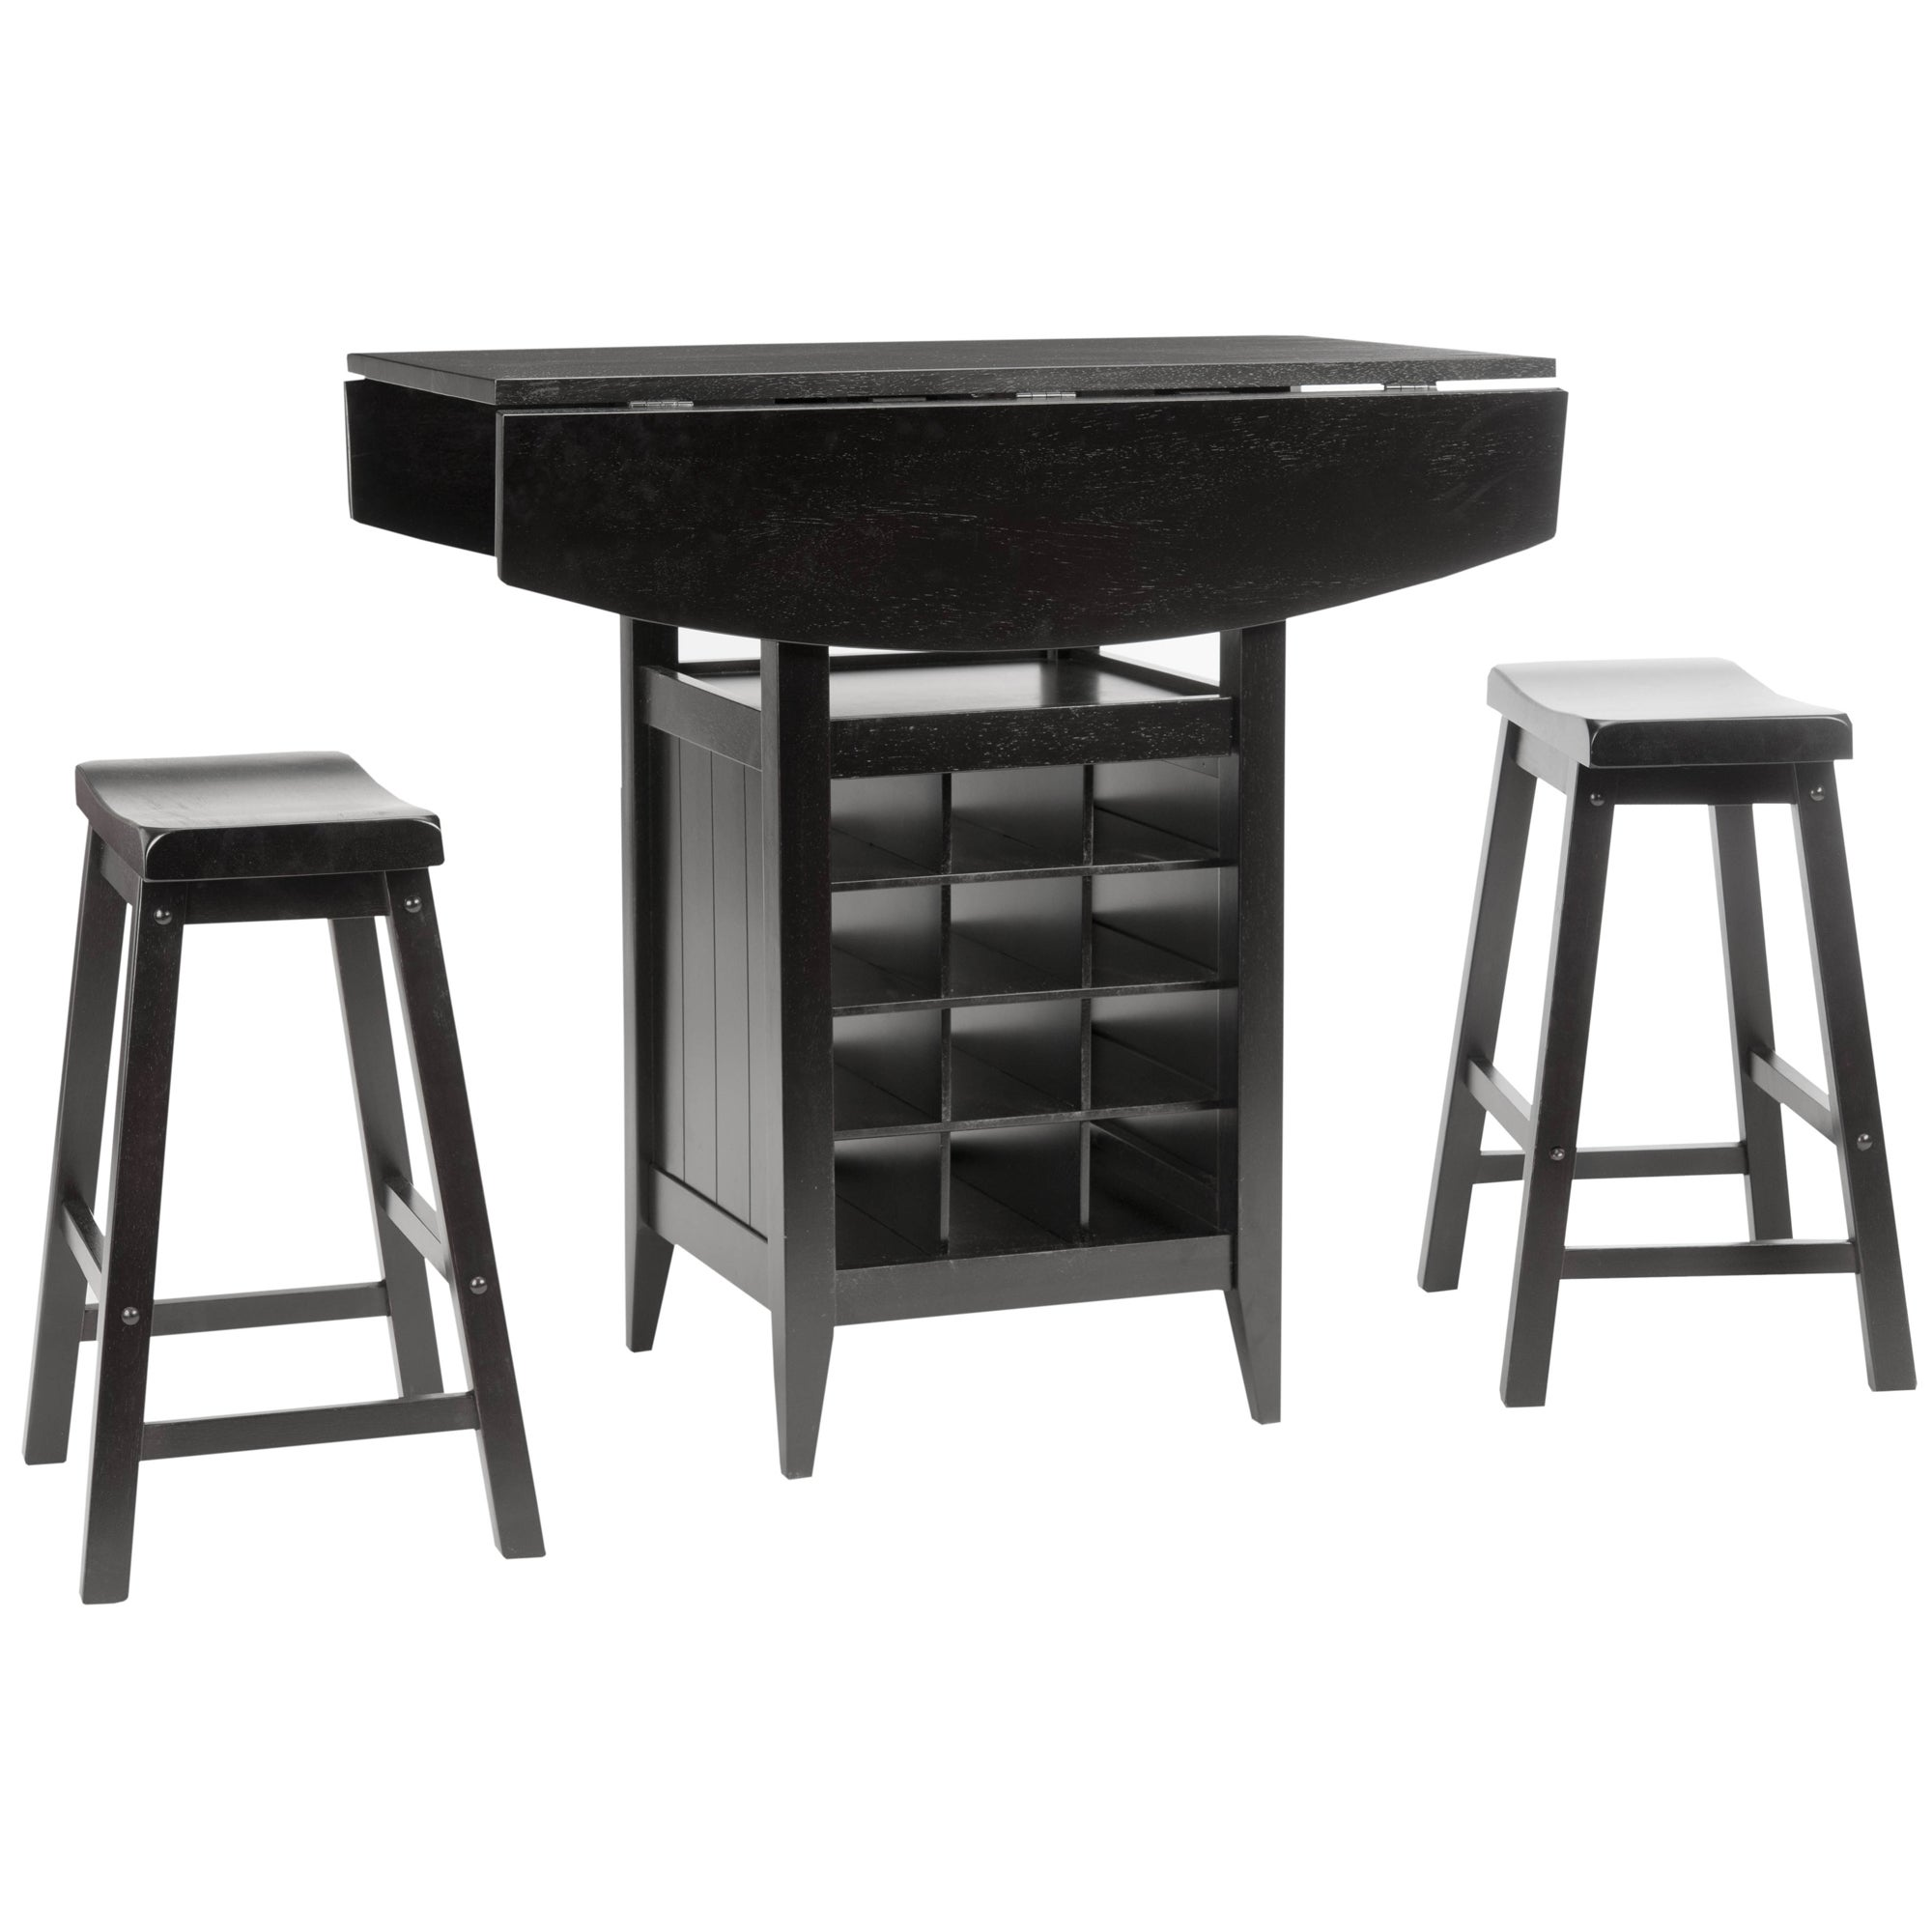 Safavieh Winery 3 Piece Counter Height Brown Storage Pub Set   Free  Shipping Today   Overstock.com   13959011 Images